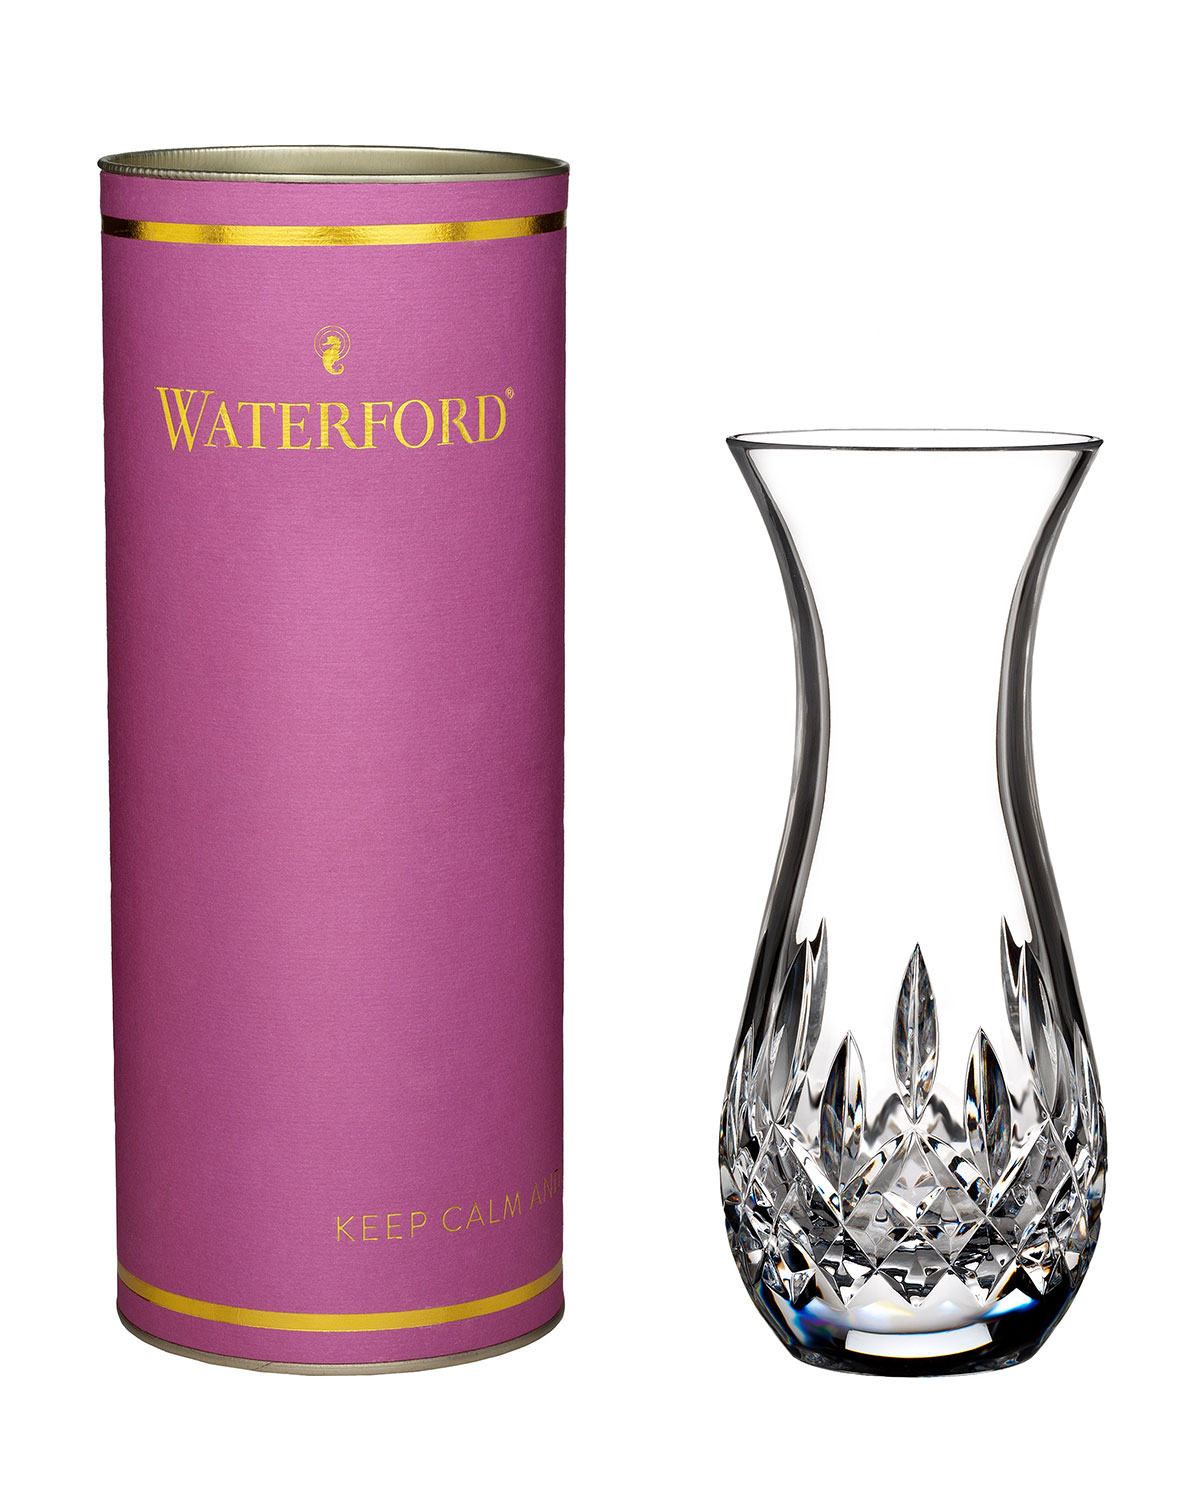 Waterford crystal vase neiman marcus quick look waterford crystal floridaeventfo Images